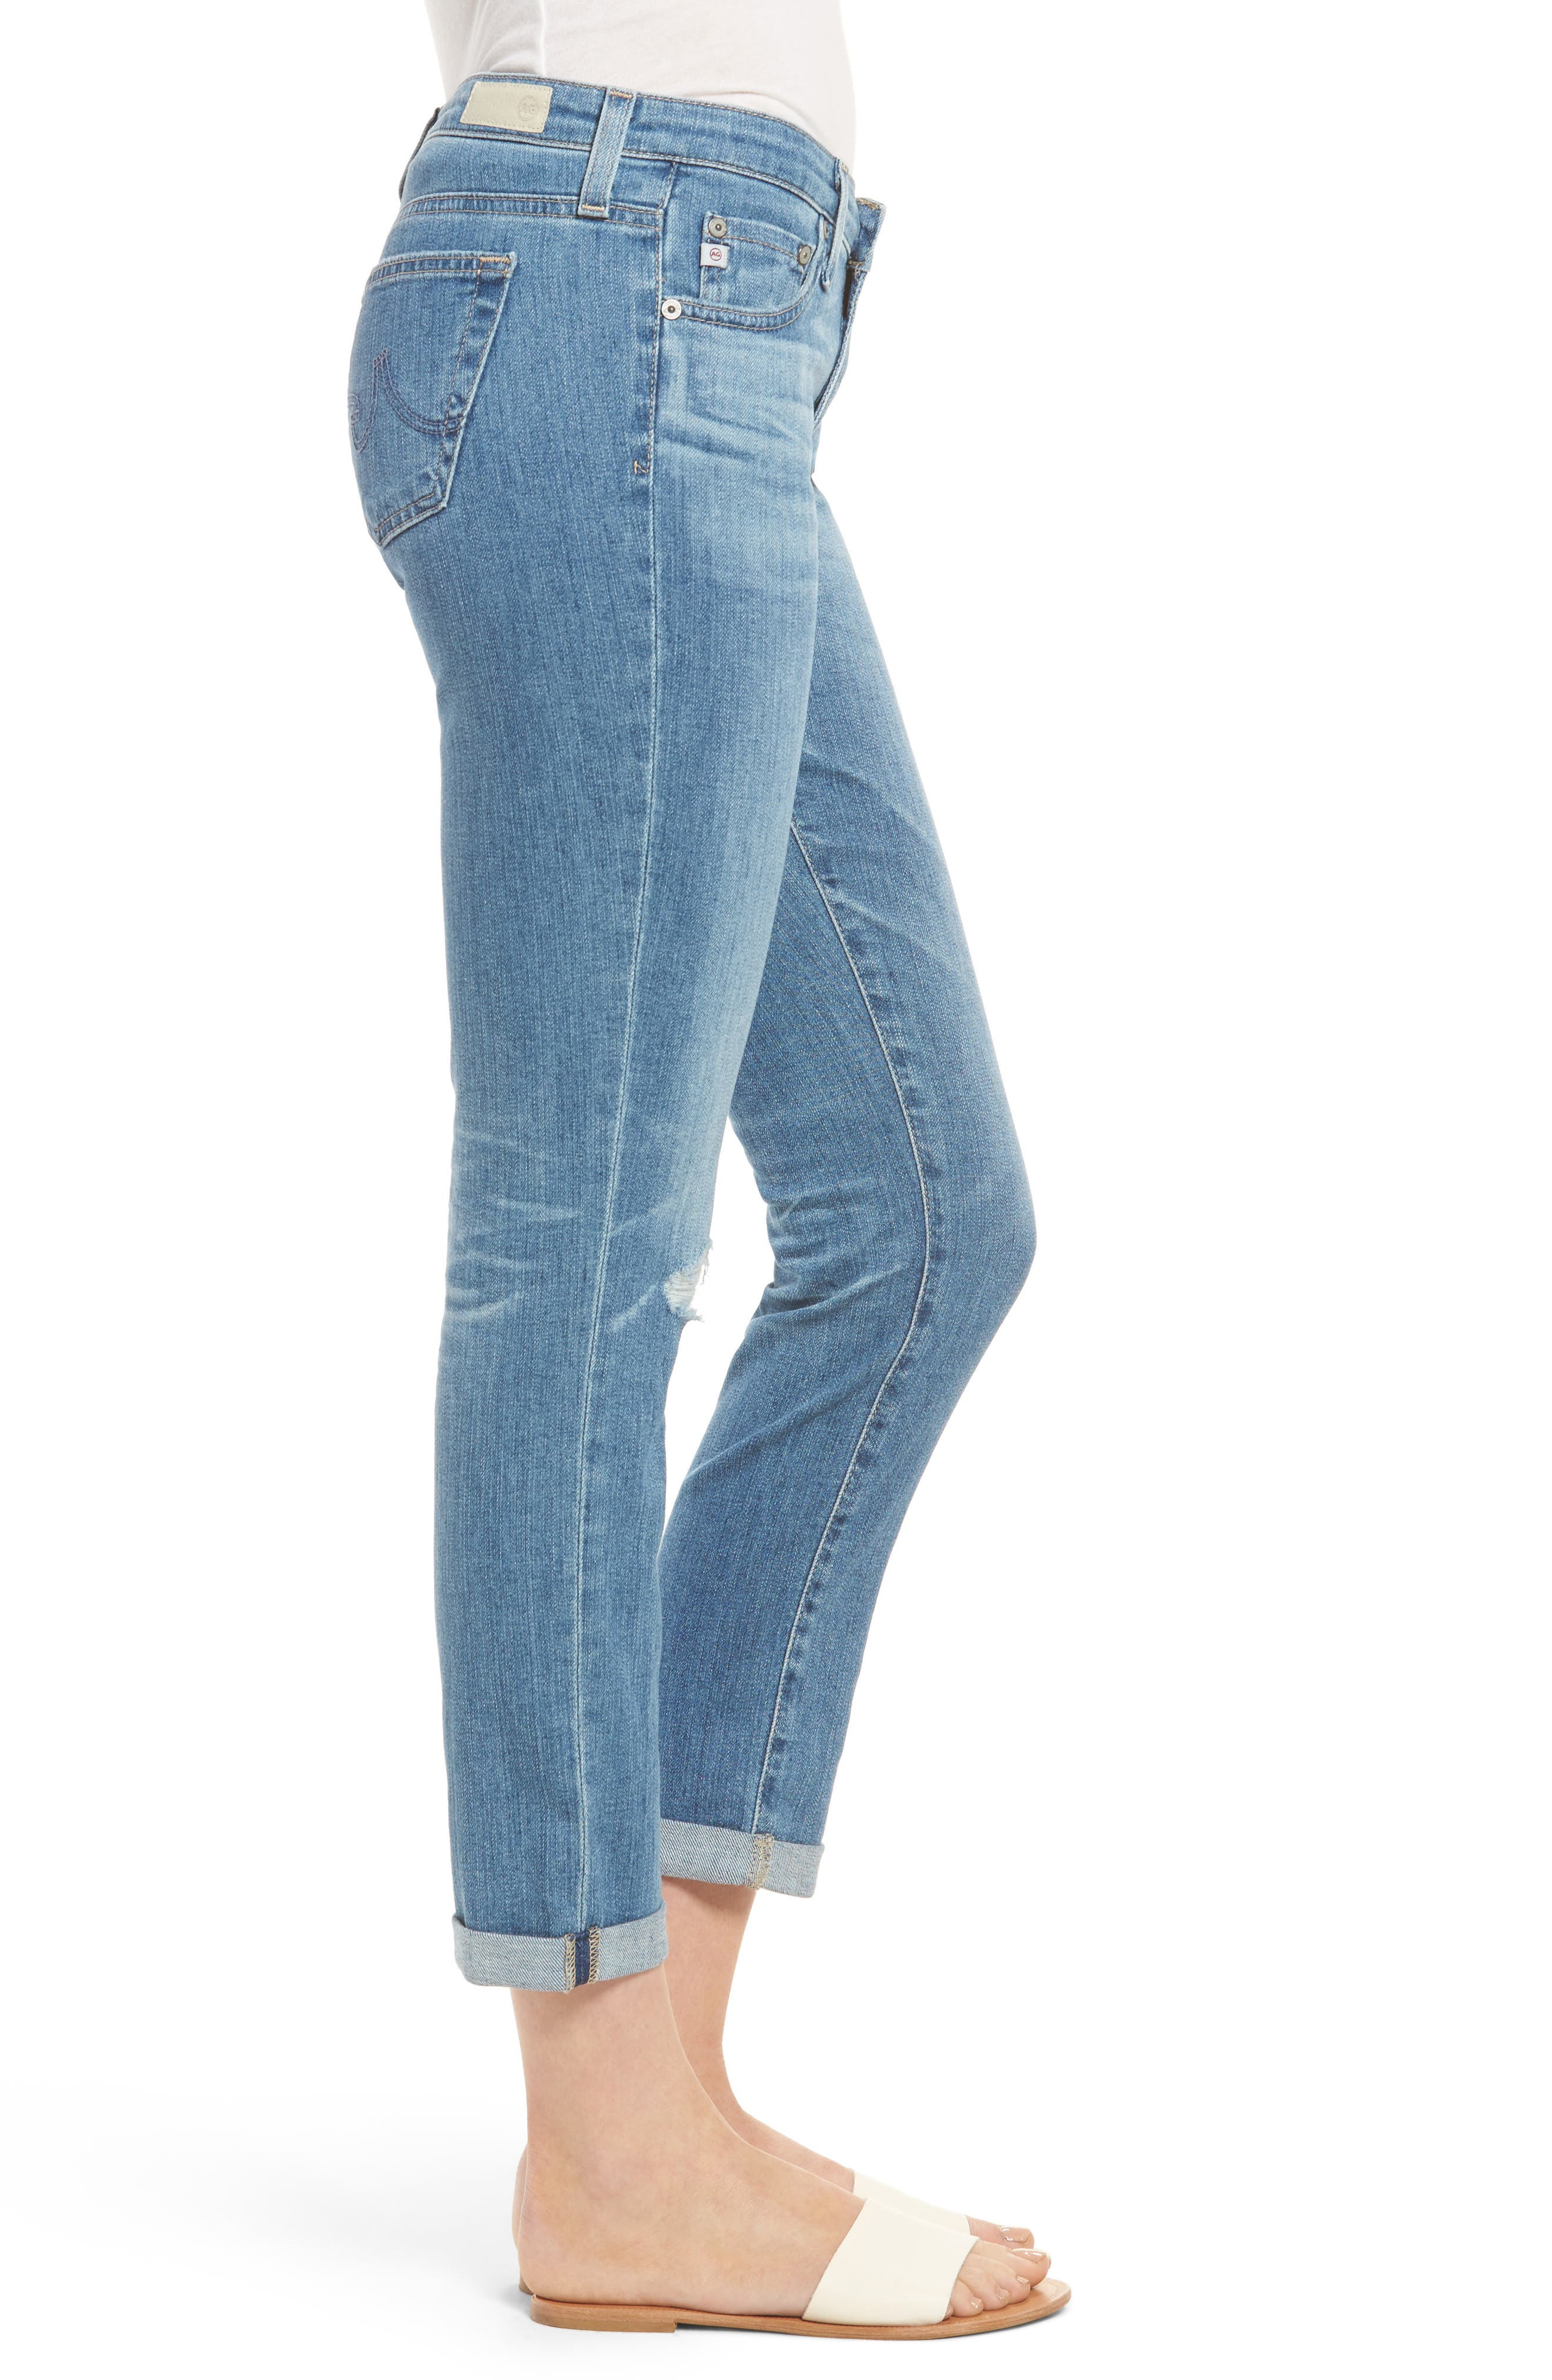 'Stilt' Distressed Roll Cuff Cigarette Jeans,                             Alternate thumbnail 3, color,                             403